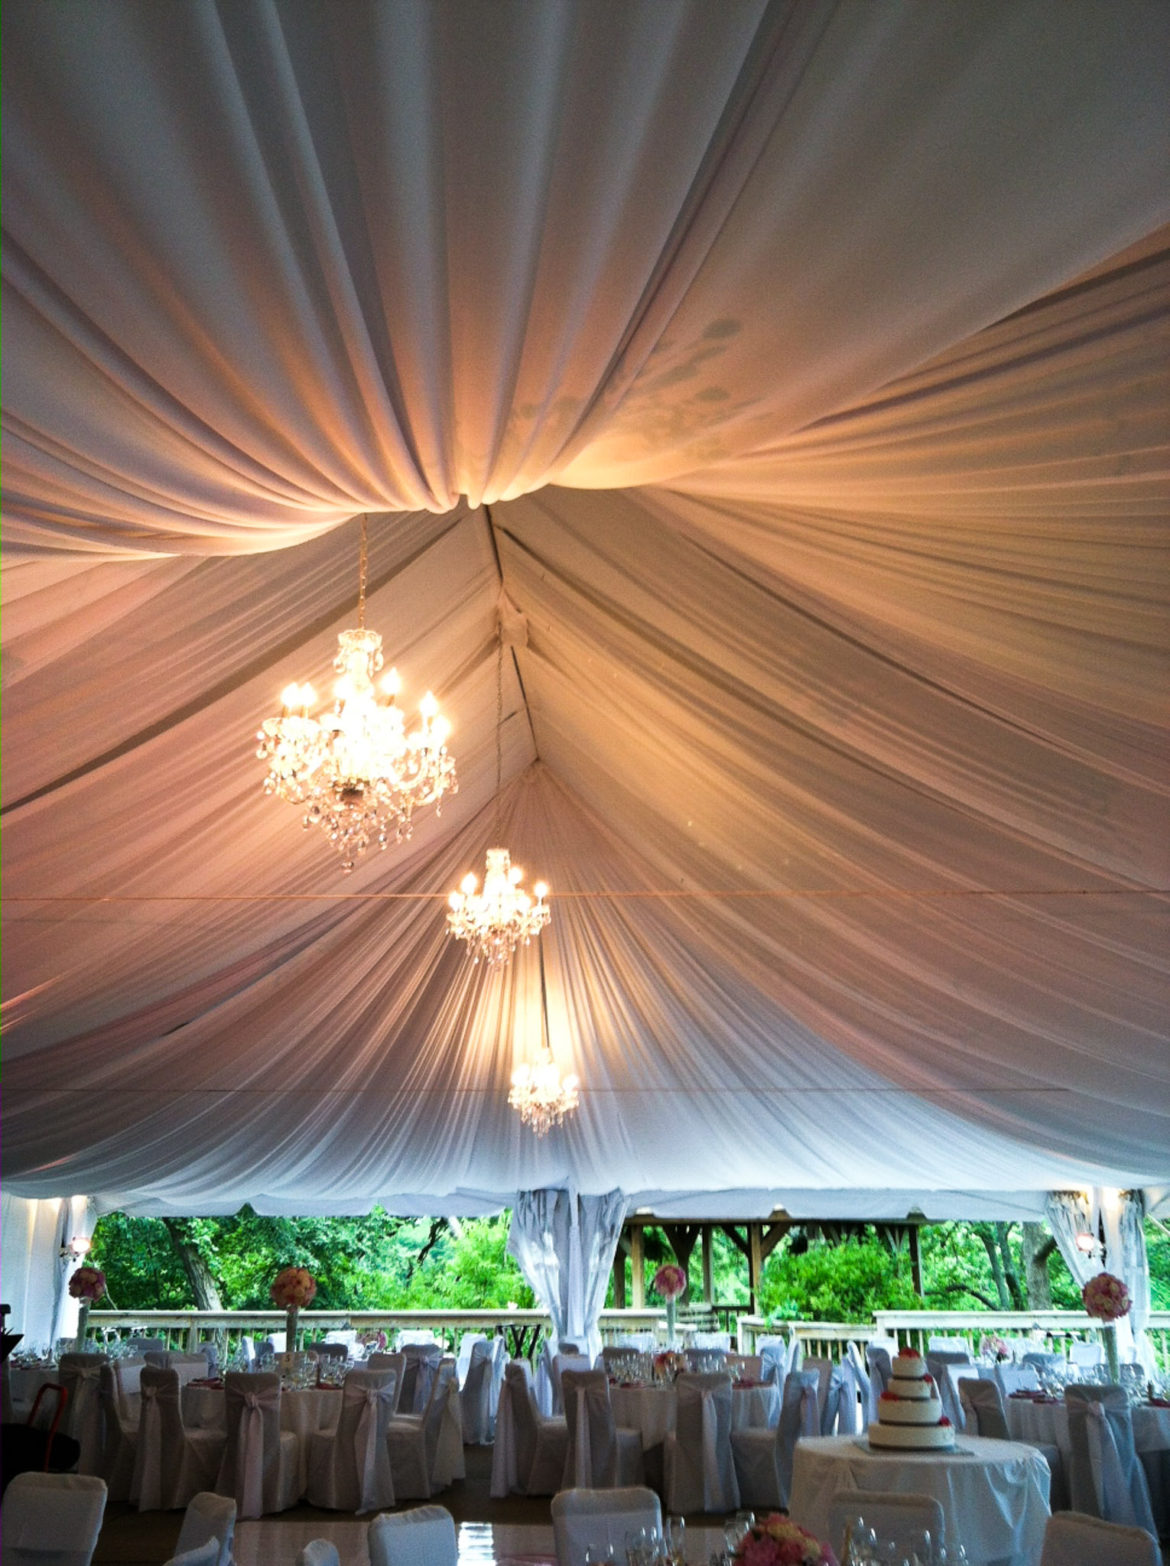 Elegant_Event_Lighting_Chicago_Eagle_River_Galena_Wedding_Decor_Tent_Decor_Tent-Draping